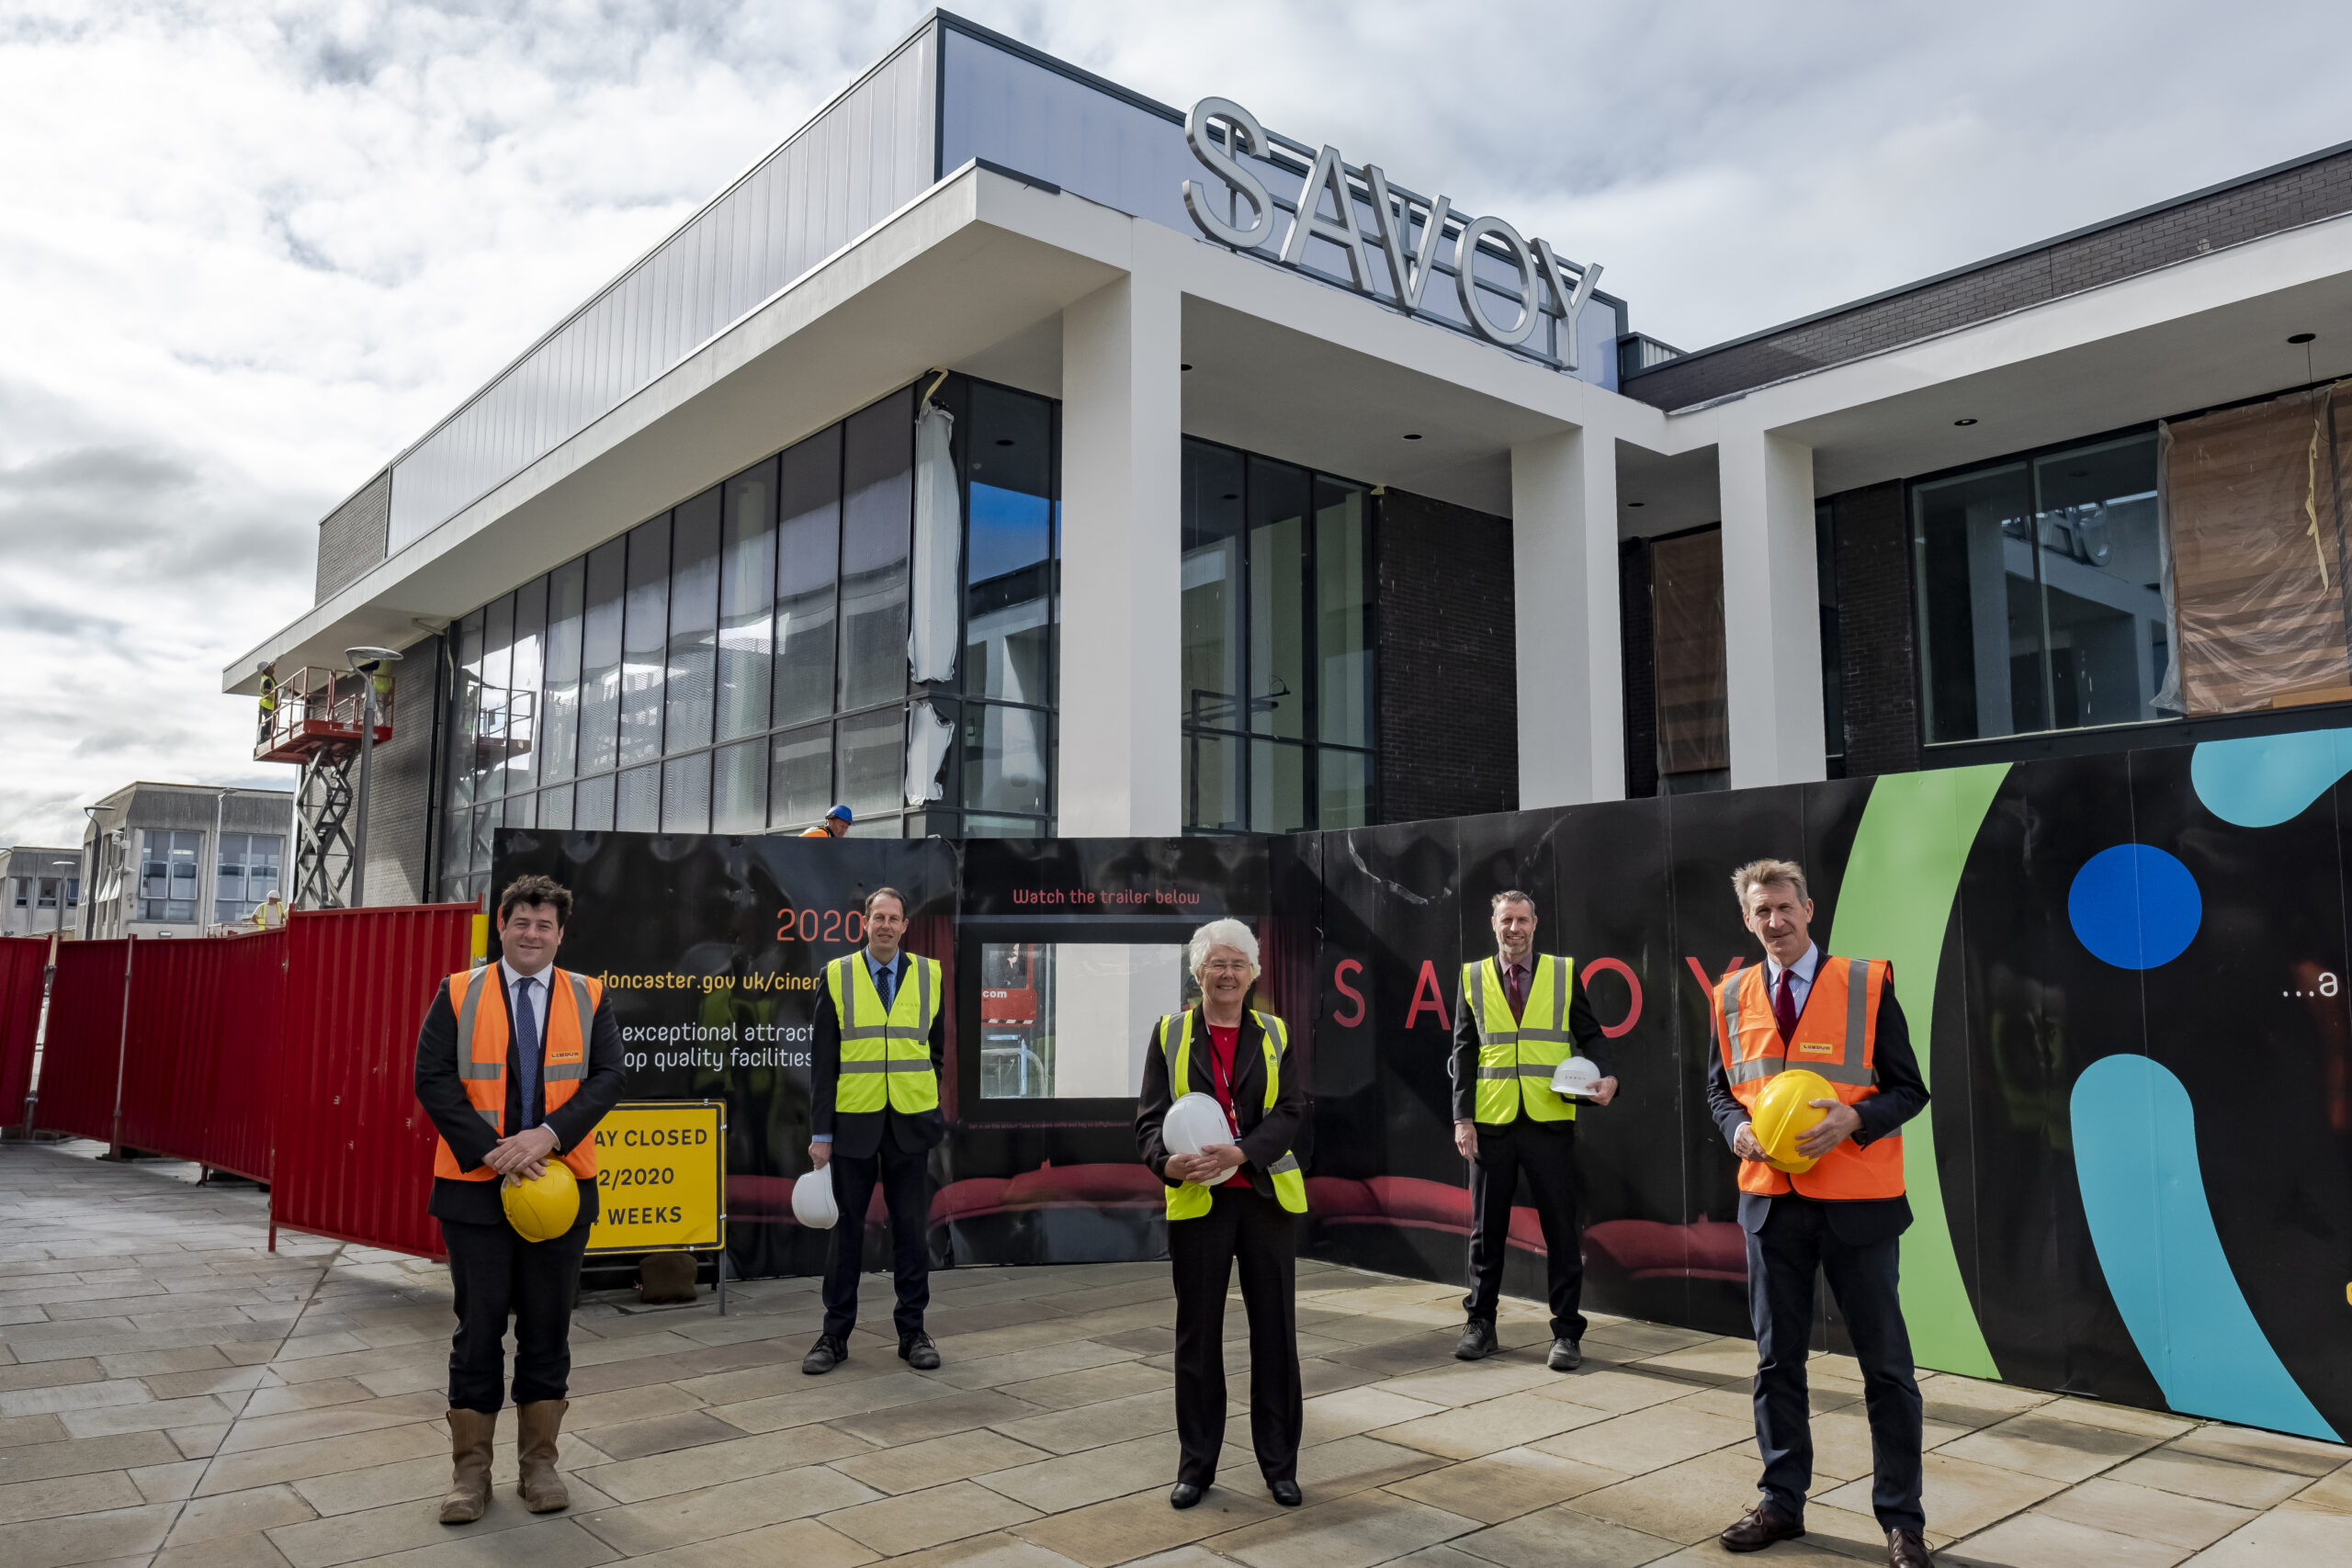 Lights. Camera. Action for Doncaster's new blockbuster cinema complex